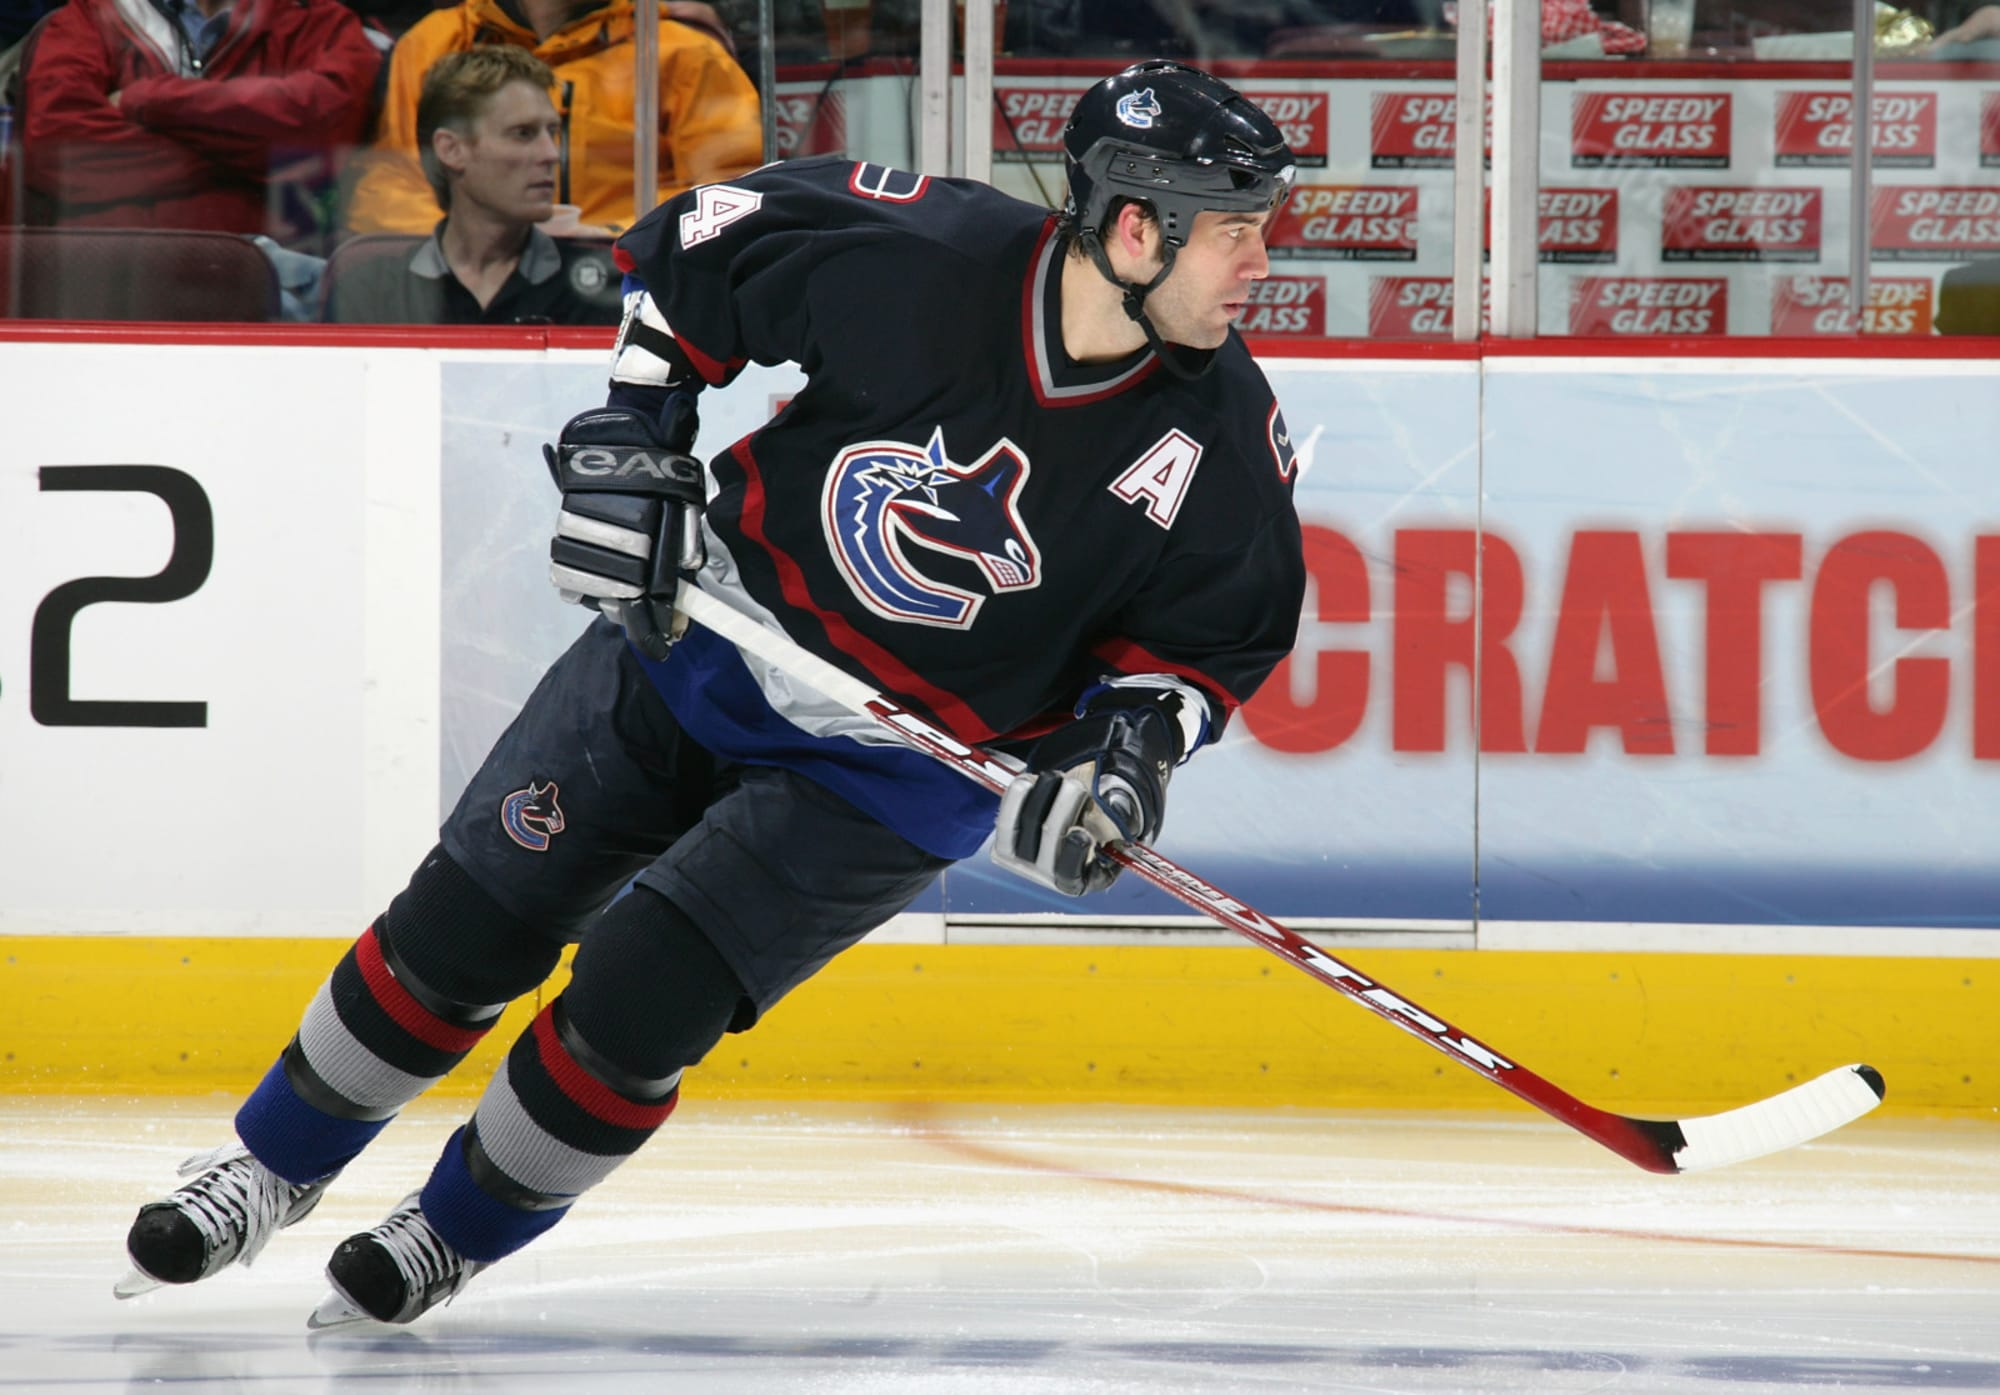 Canucks Rewind: The Todd Bertuzzi trade, and his time spent in ...